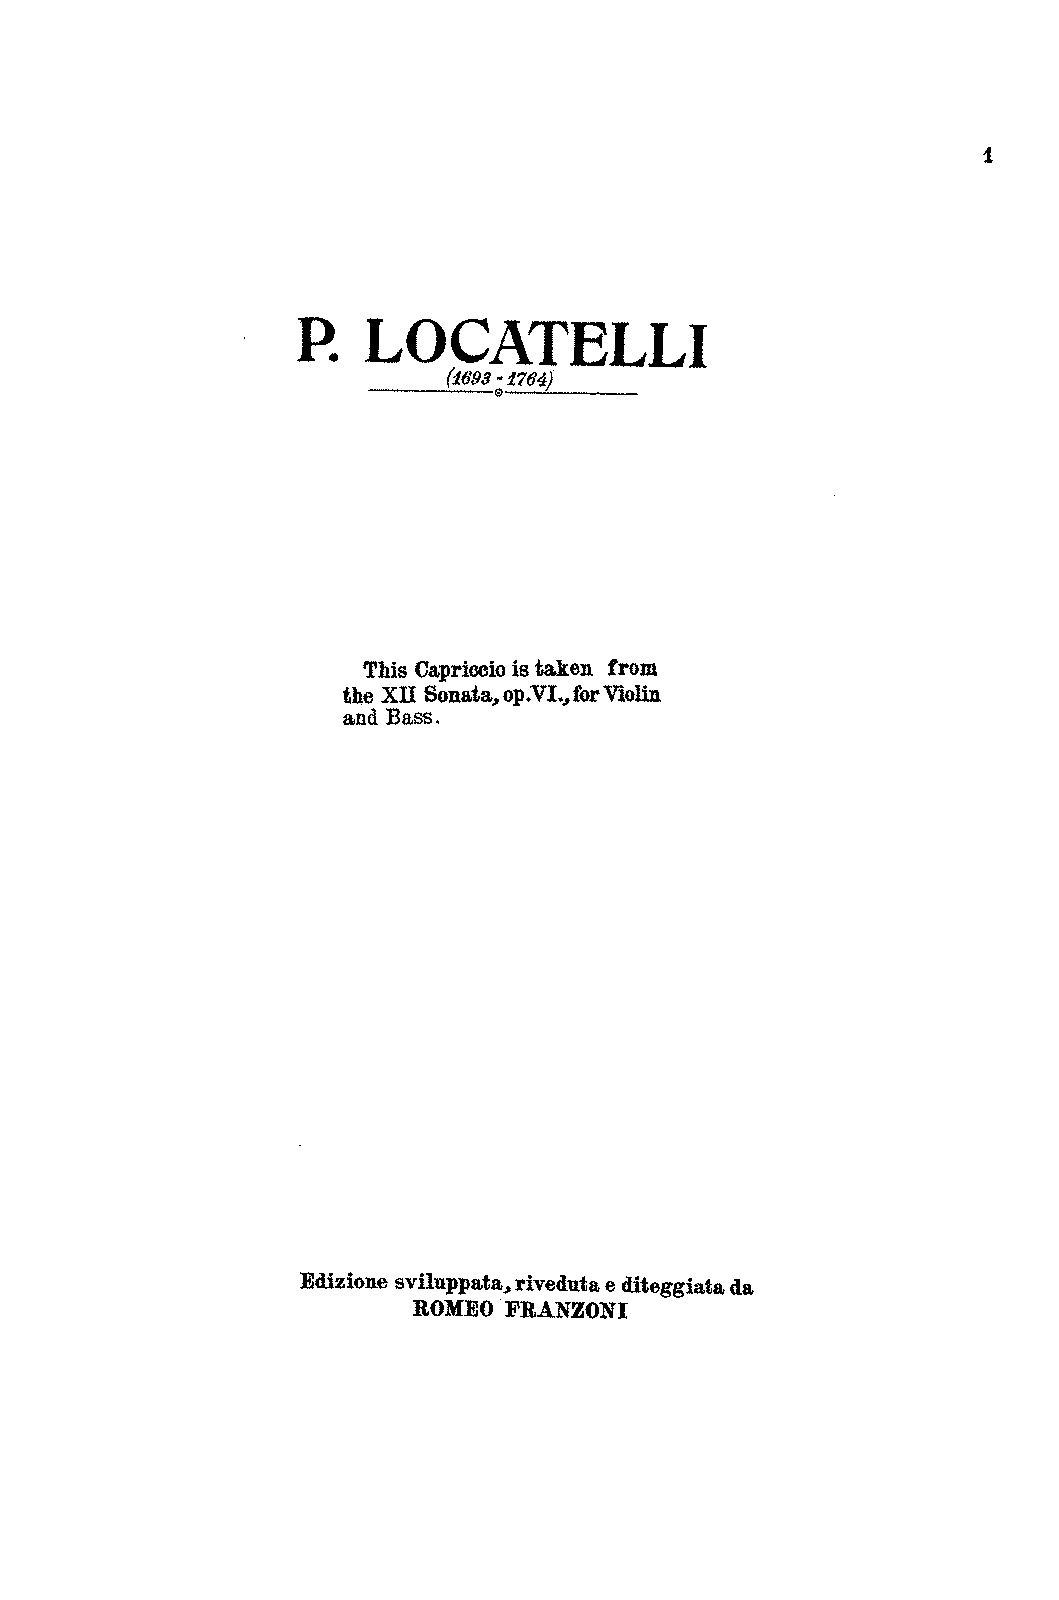 PMLP138836-Locatelli - Capriccio from Sonata No12 Op6 (Franzoni) for violin solo.pdf